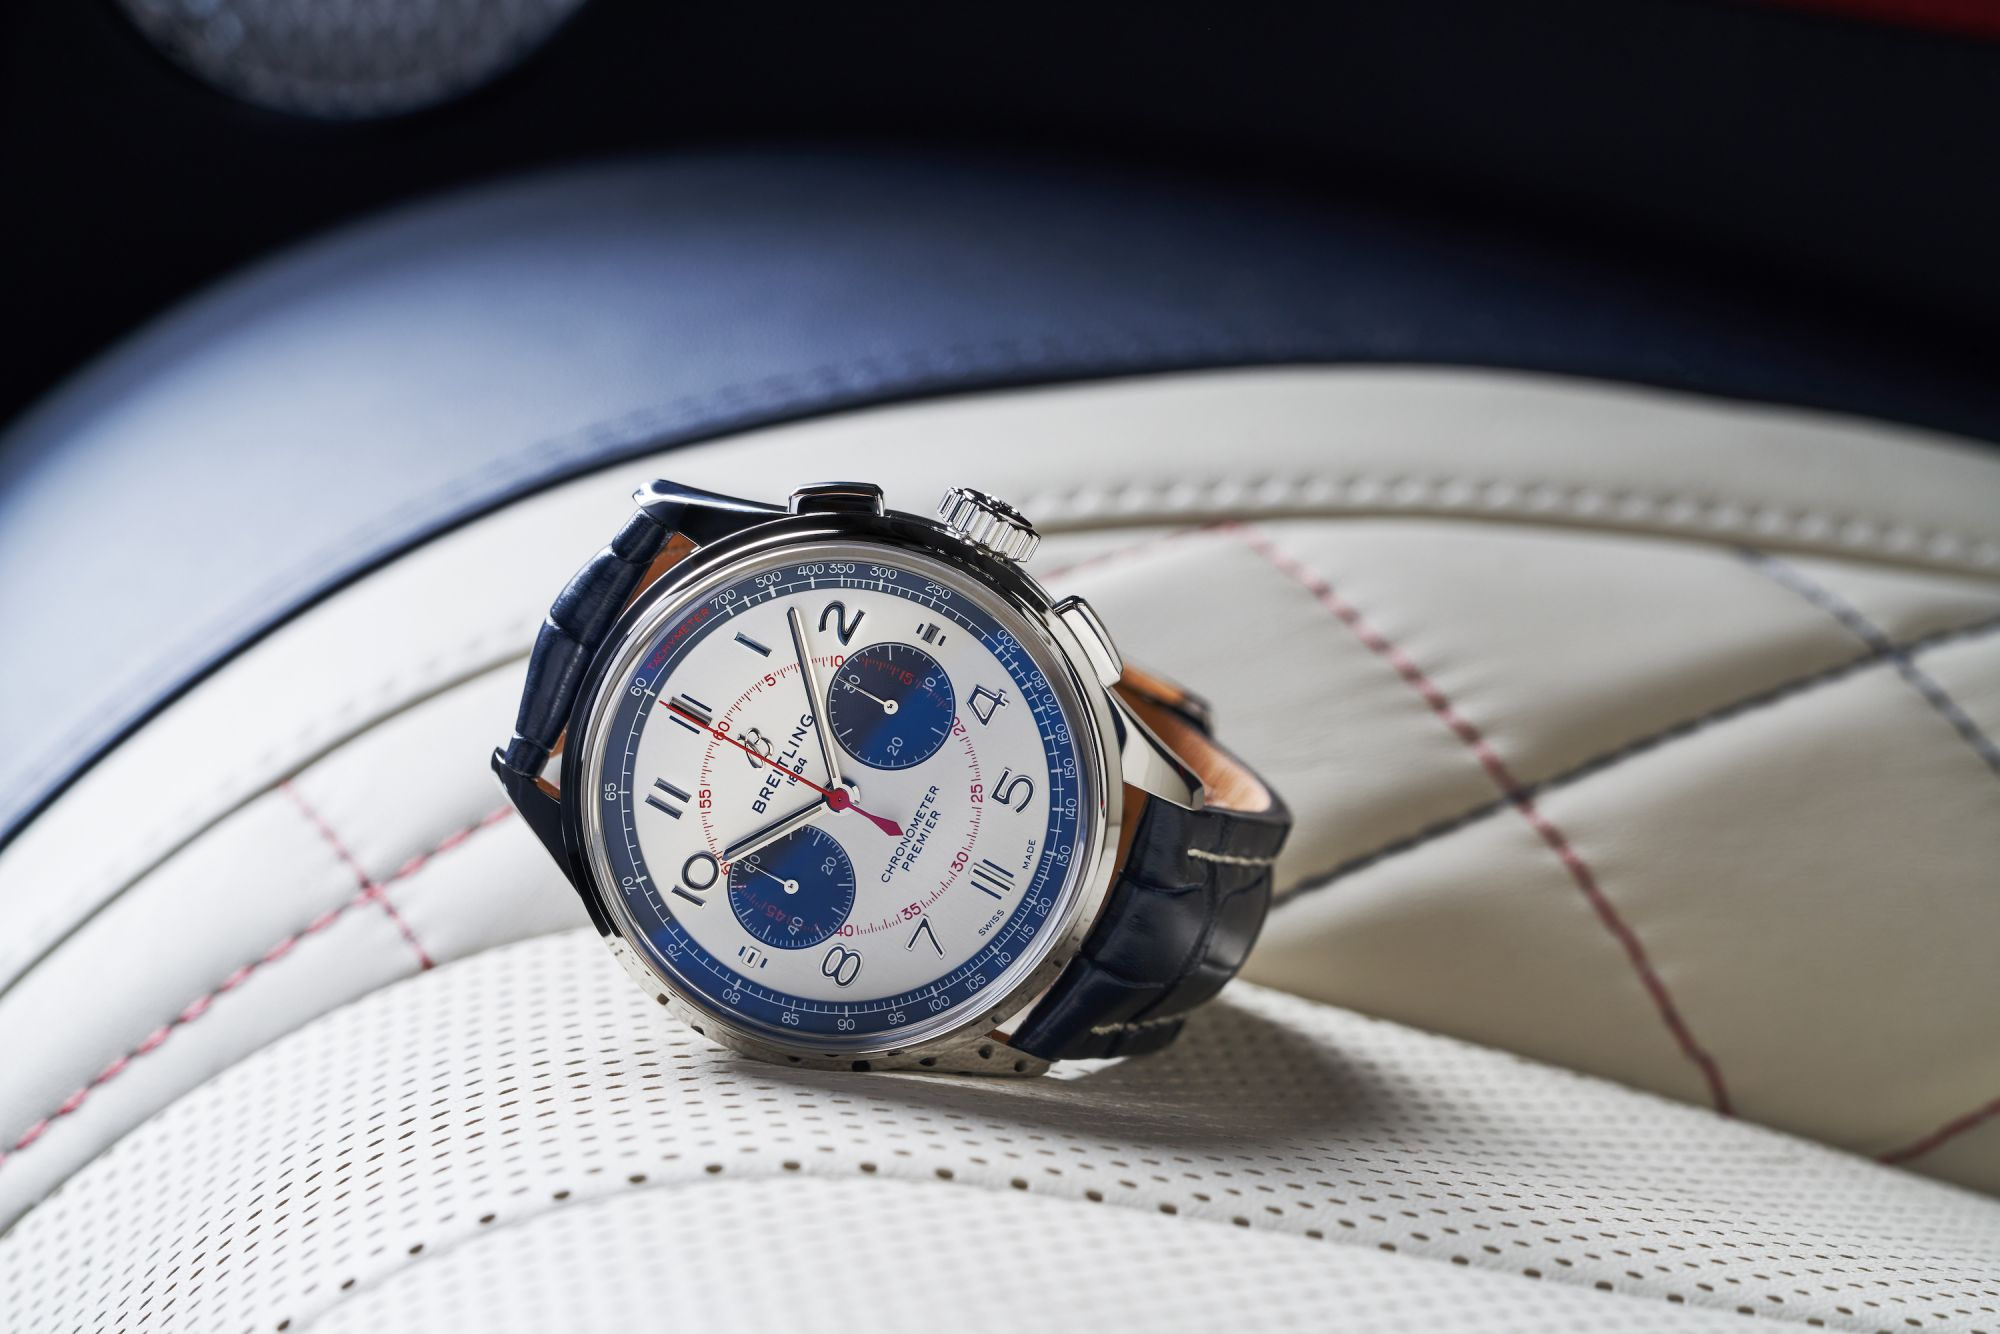 Breitling And Bentley Motors Latest Timepiece Commemorates The 17-Year Partnership